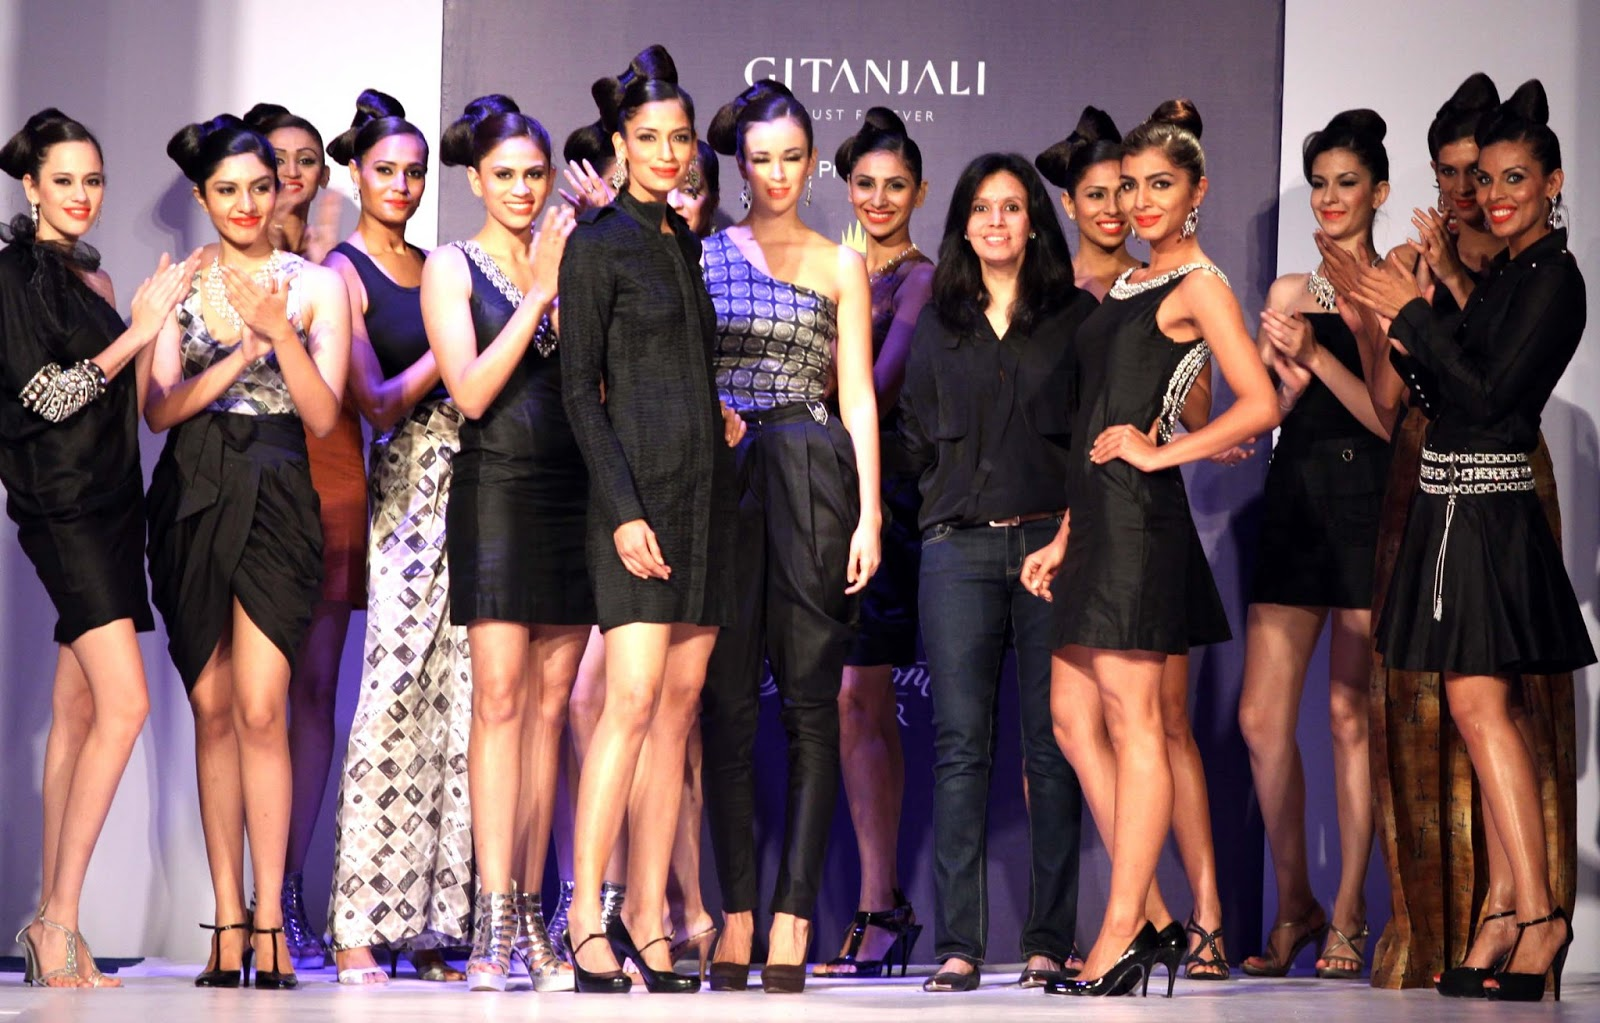 Orient Publication Vikram Phadnis Started The 2nd Edition Of Rajasthan Fashion Week At Fairmont Jaipur